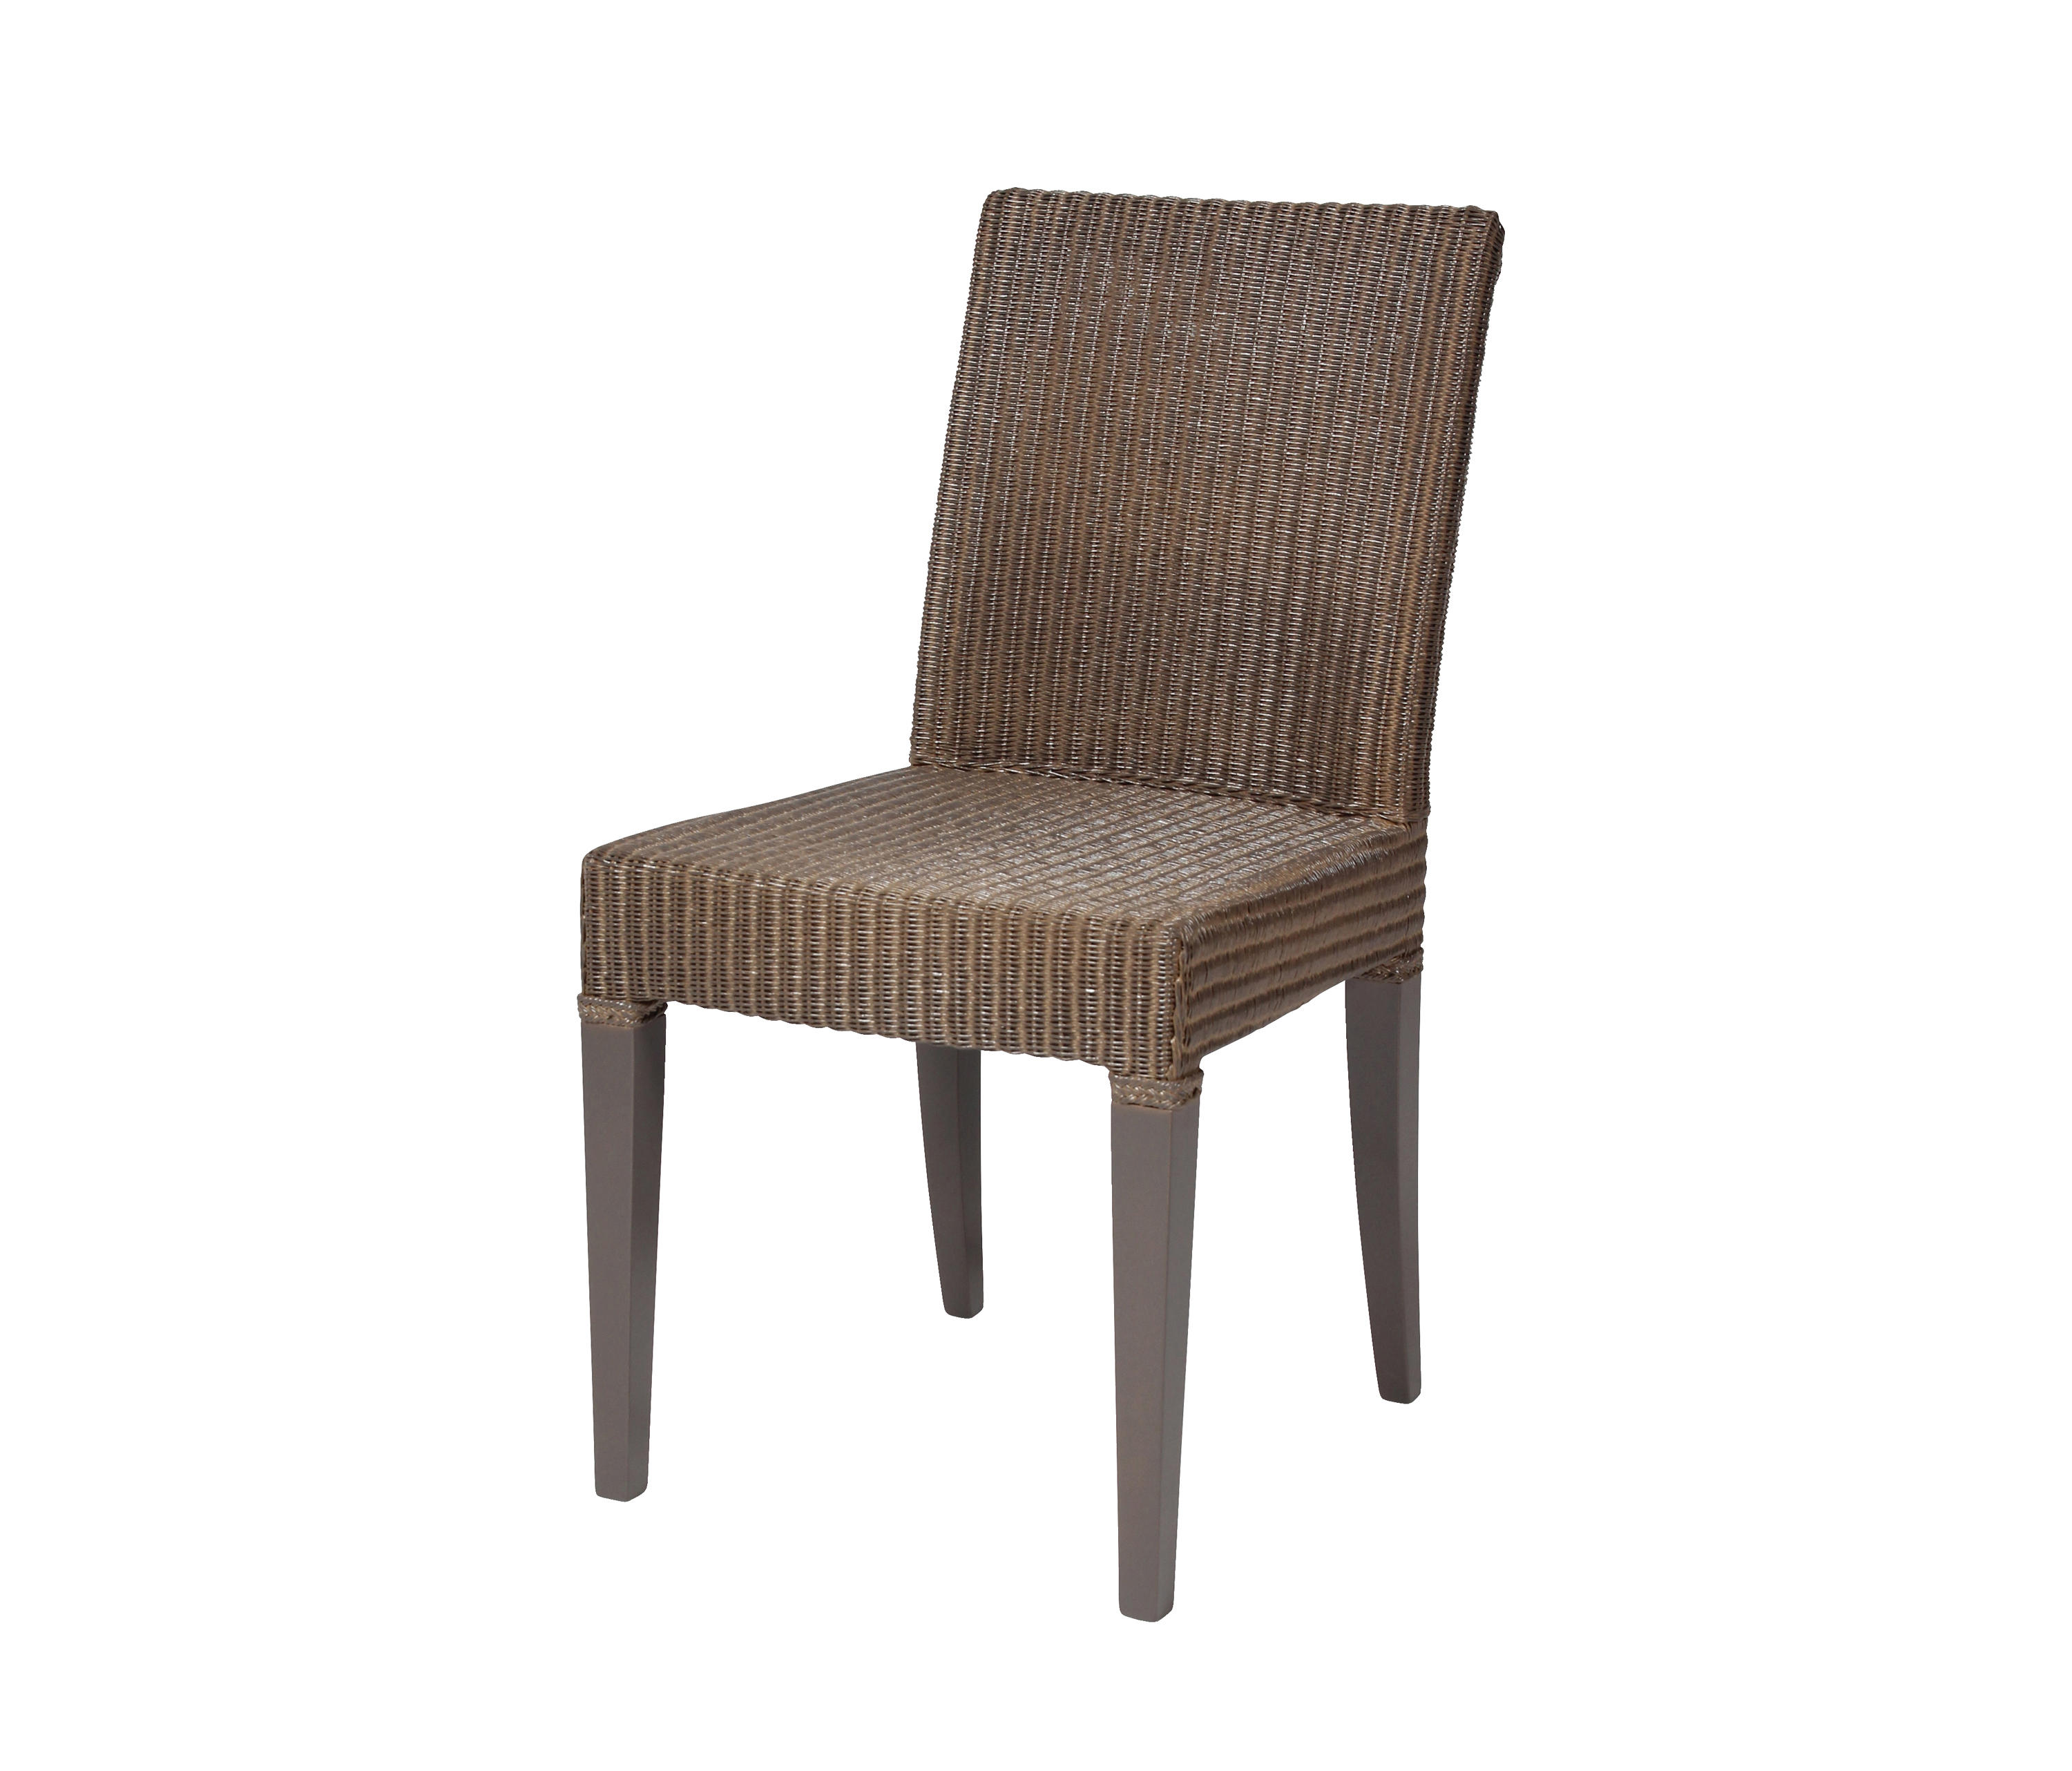 Vincent Sheppard Edward Chairs From Vincent Sheppard Architonic